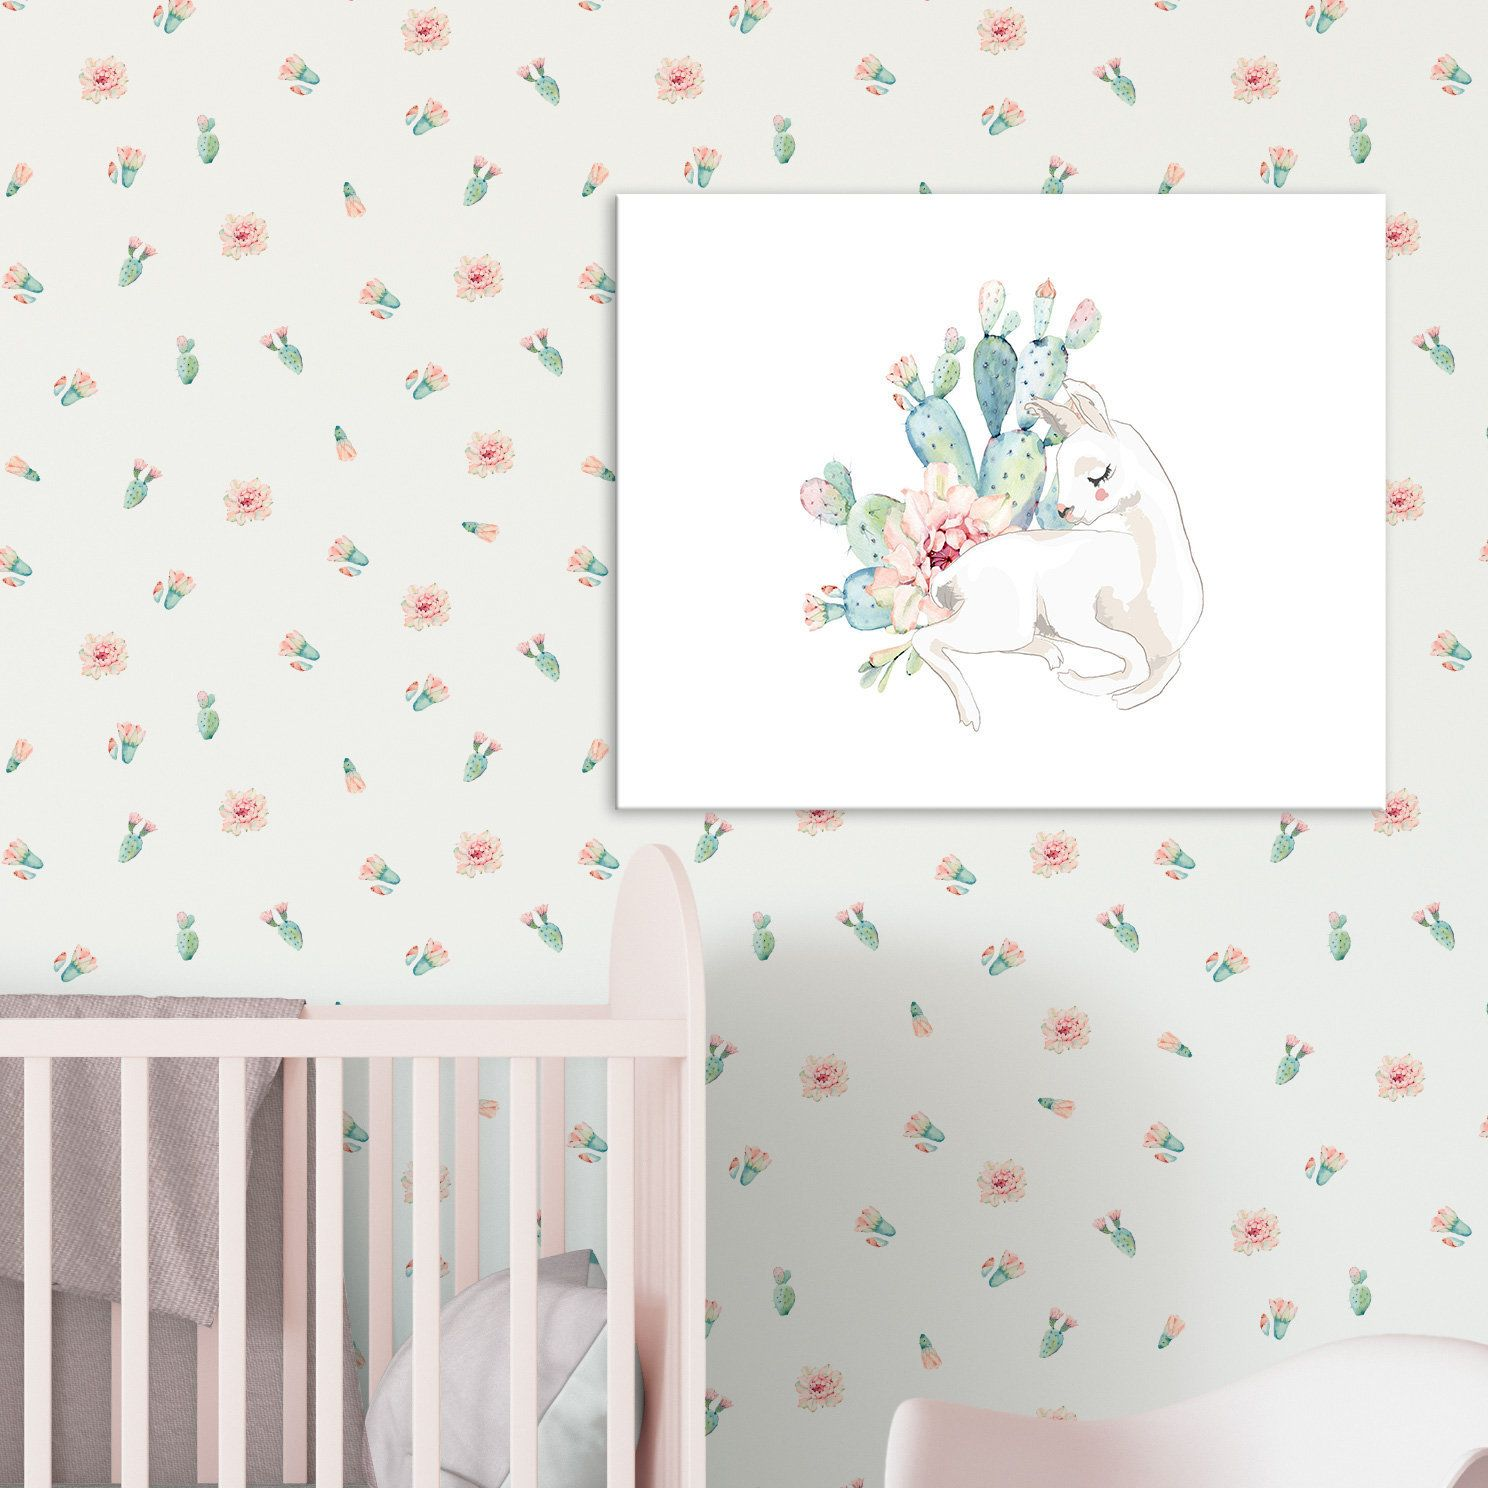 Pink Floral Wallpaper Shabby Chic Feature Wall Removable Etsy Pink Floral Wallpaper Floral Wallpaper Baby Girl Nursery Wallpaper